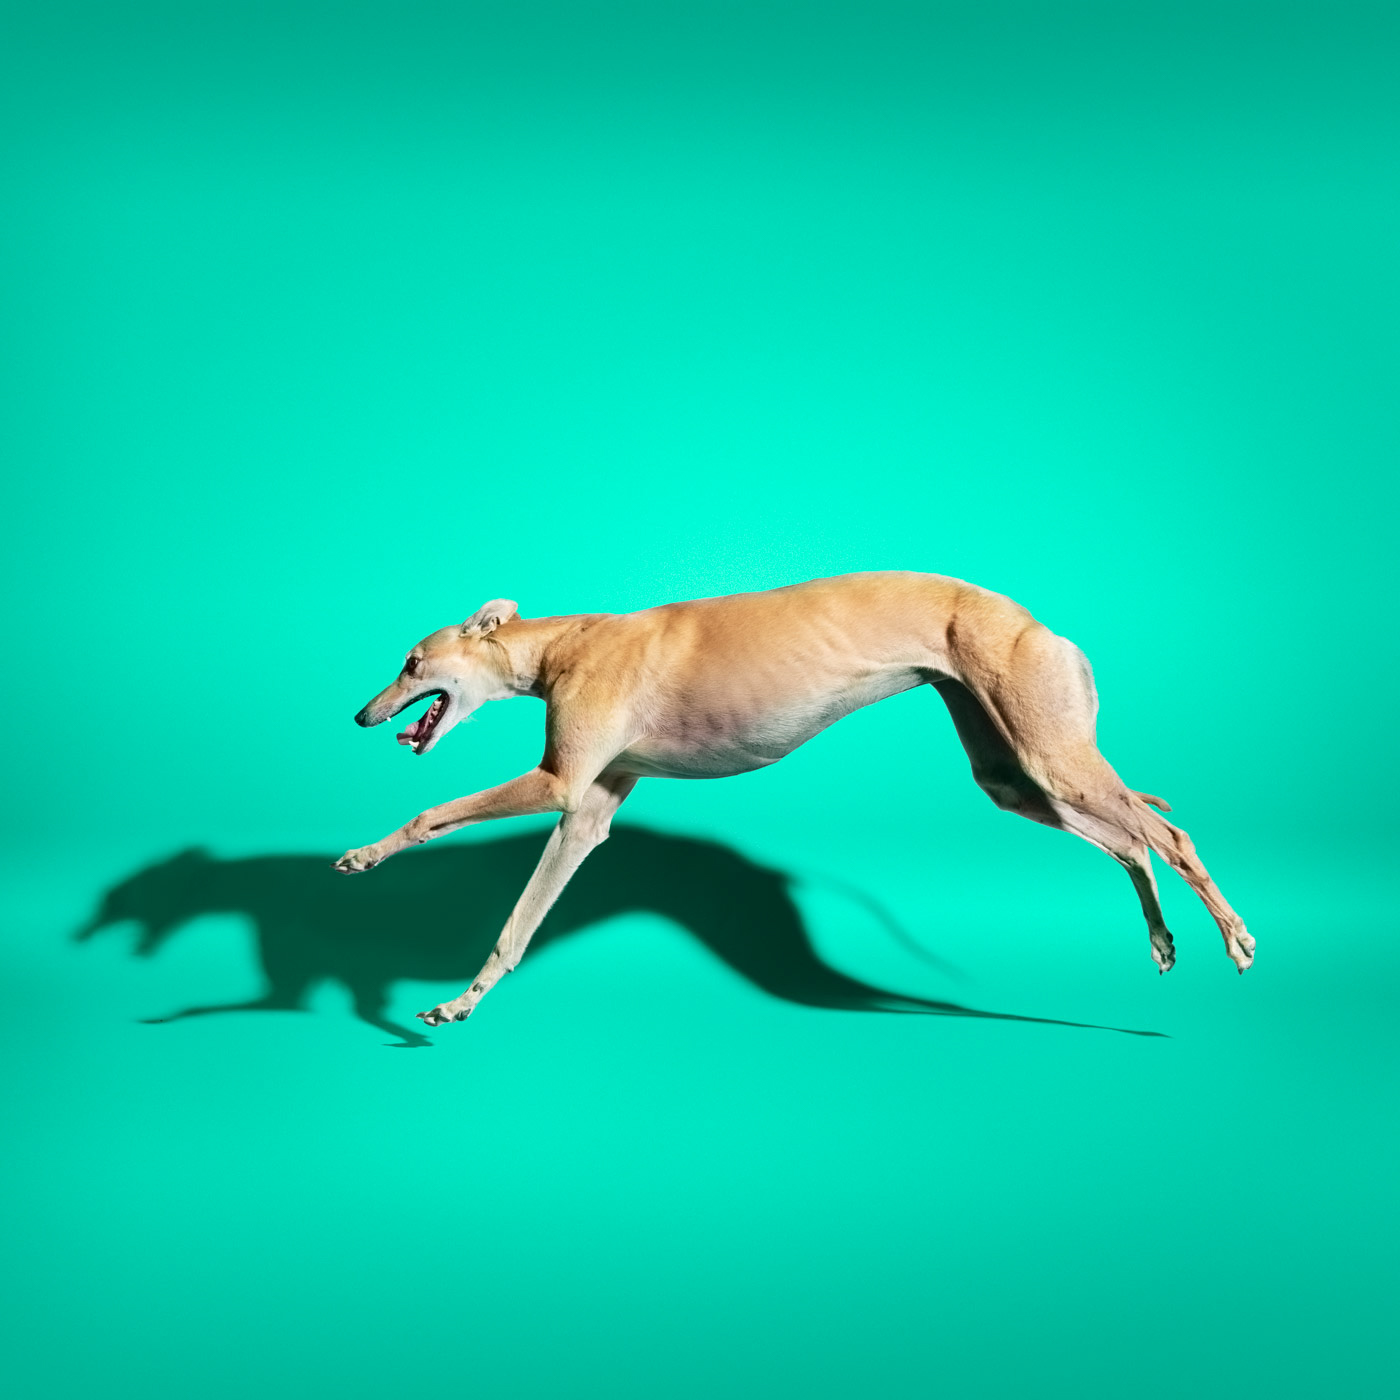 Commercial photography Portland - greyhound dog on blue green  background